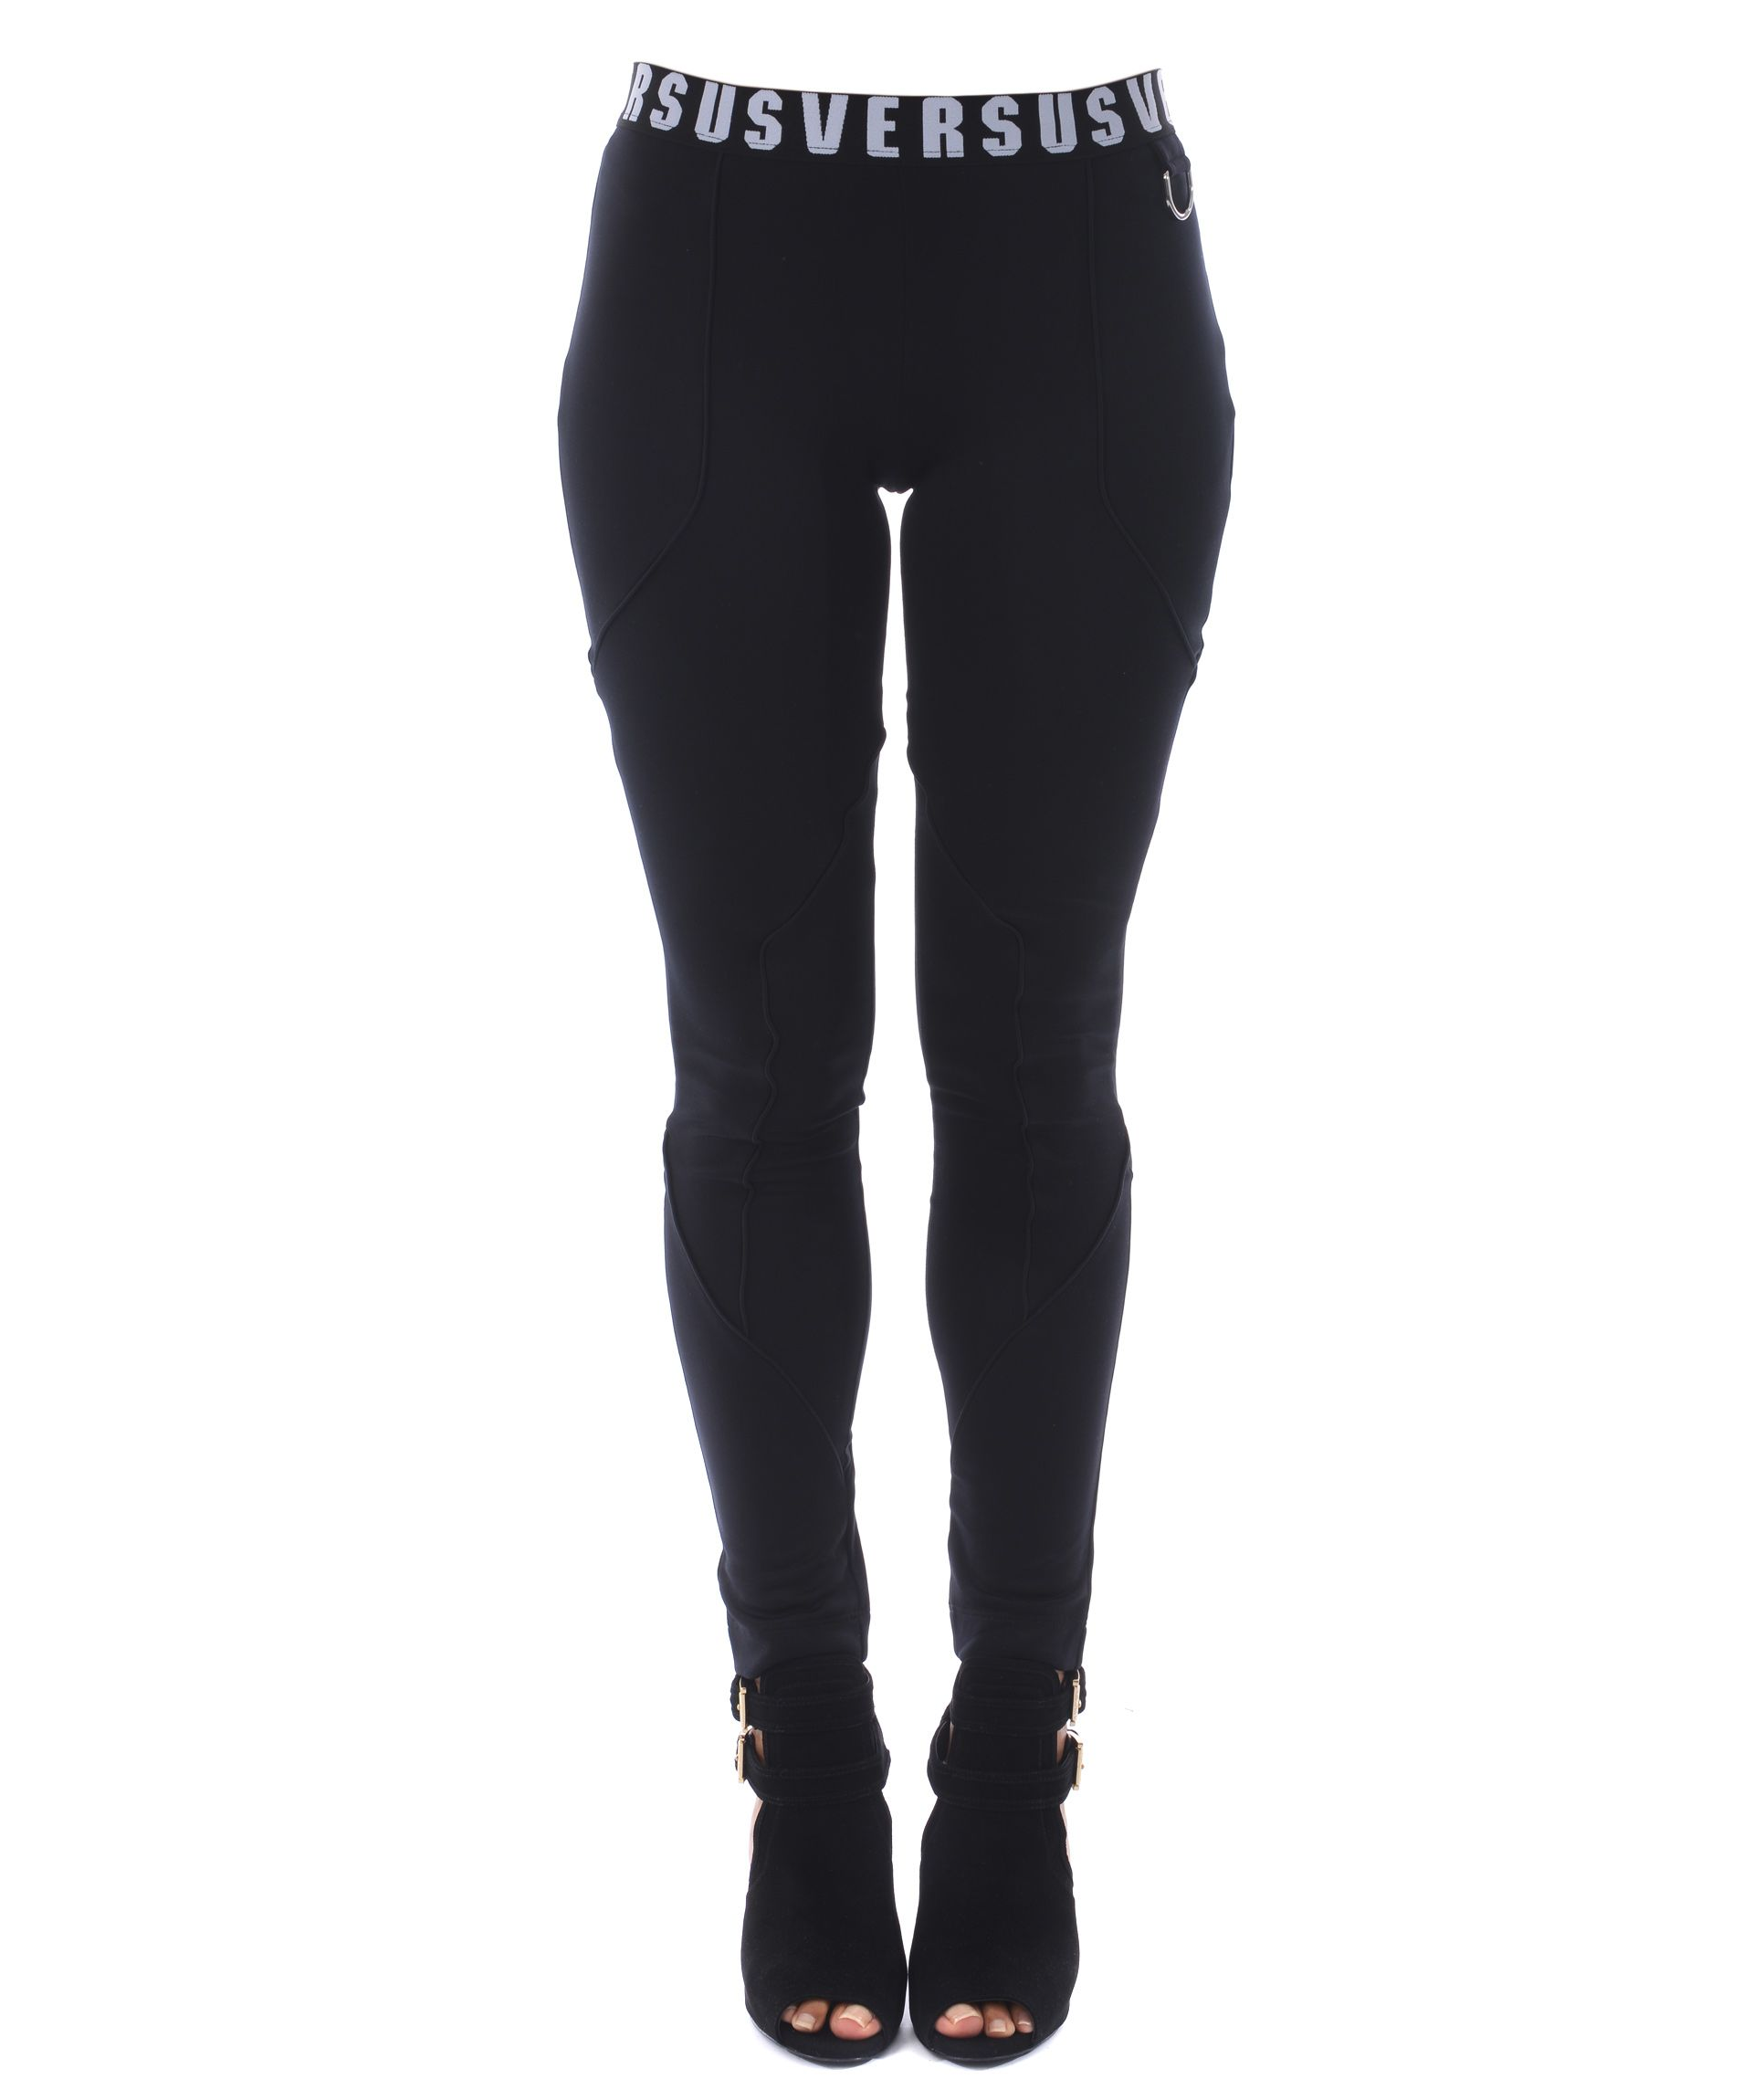 Versus Branded Waistband Leggings